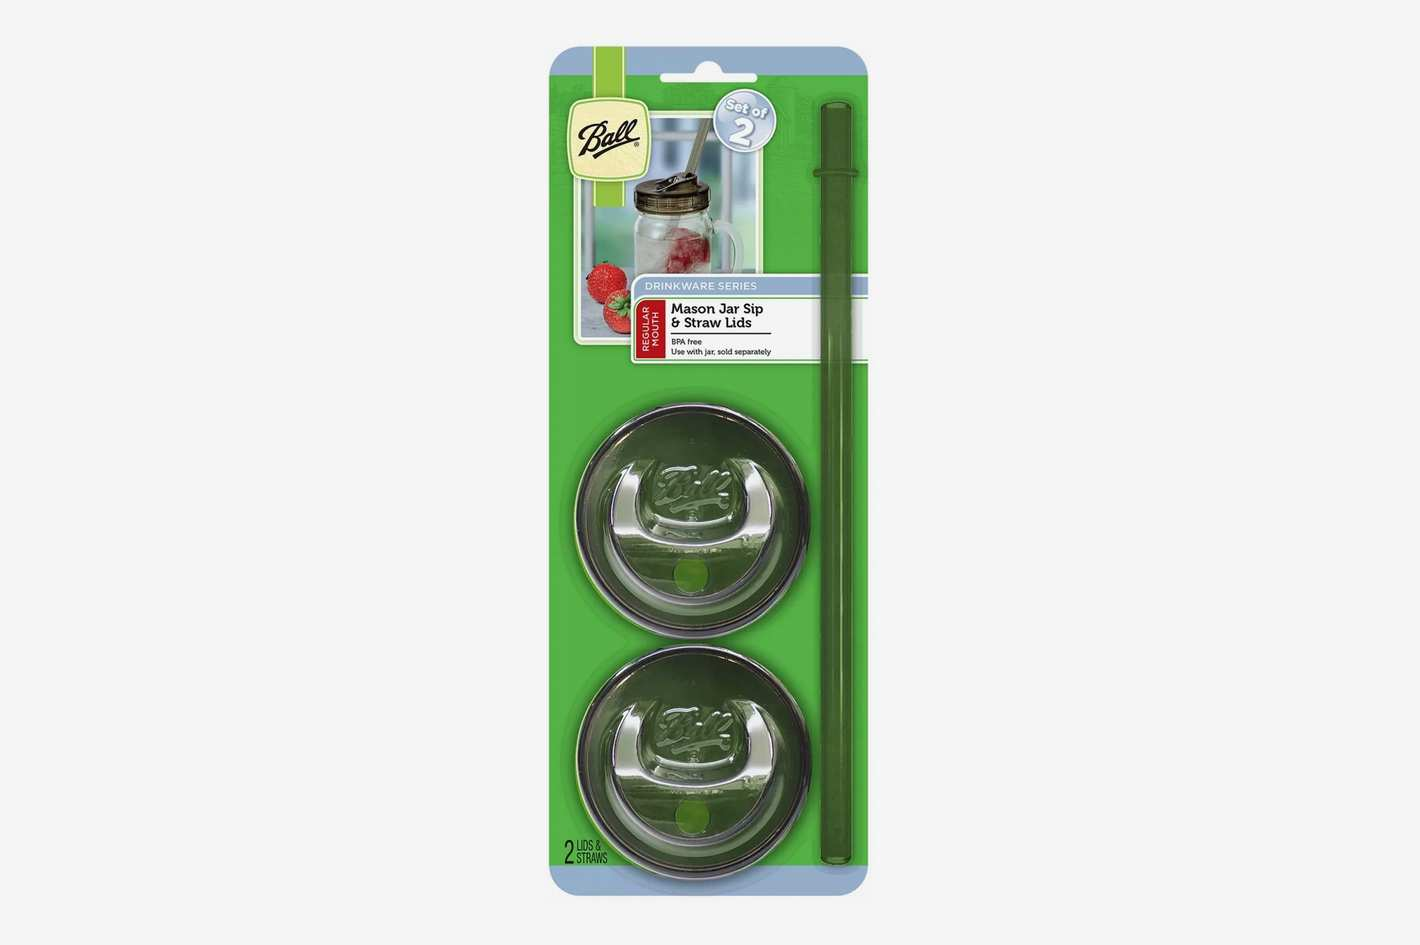 Ball Set of 2 Mason Jar Sip and Straw Lids - Regular Mouth